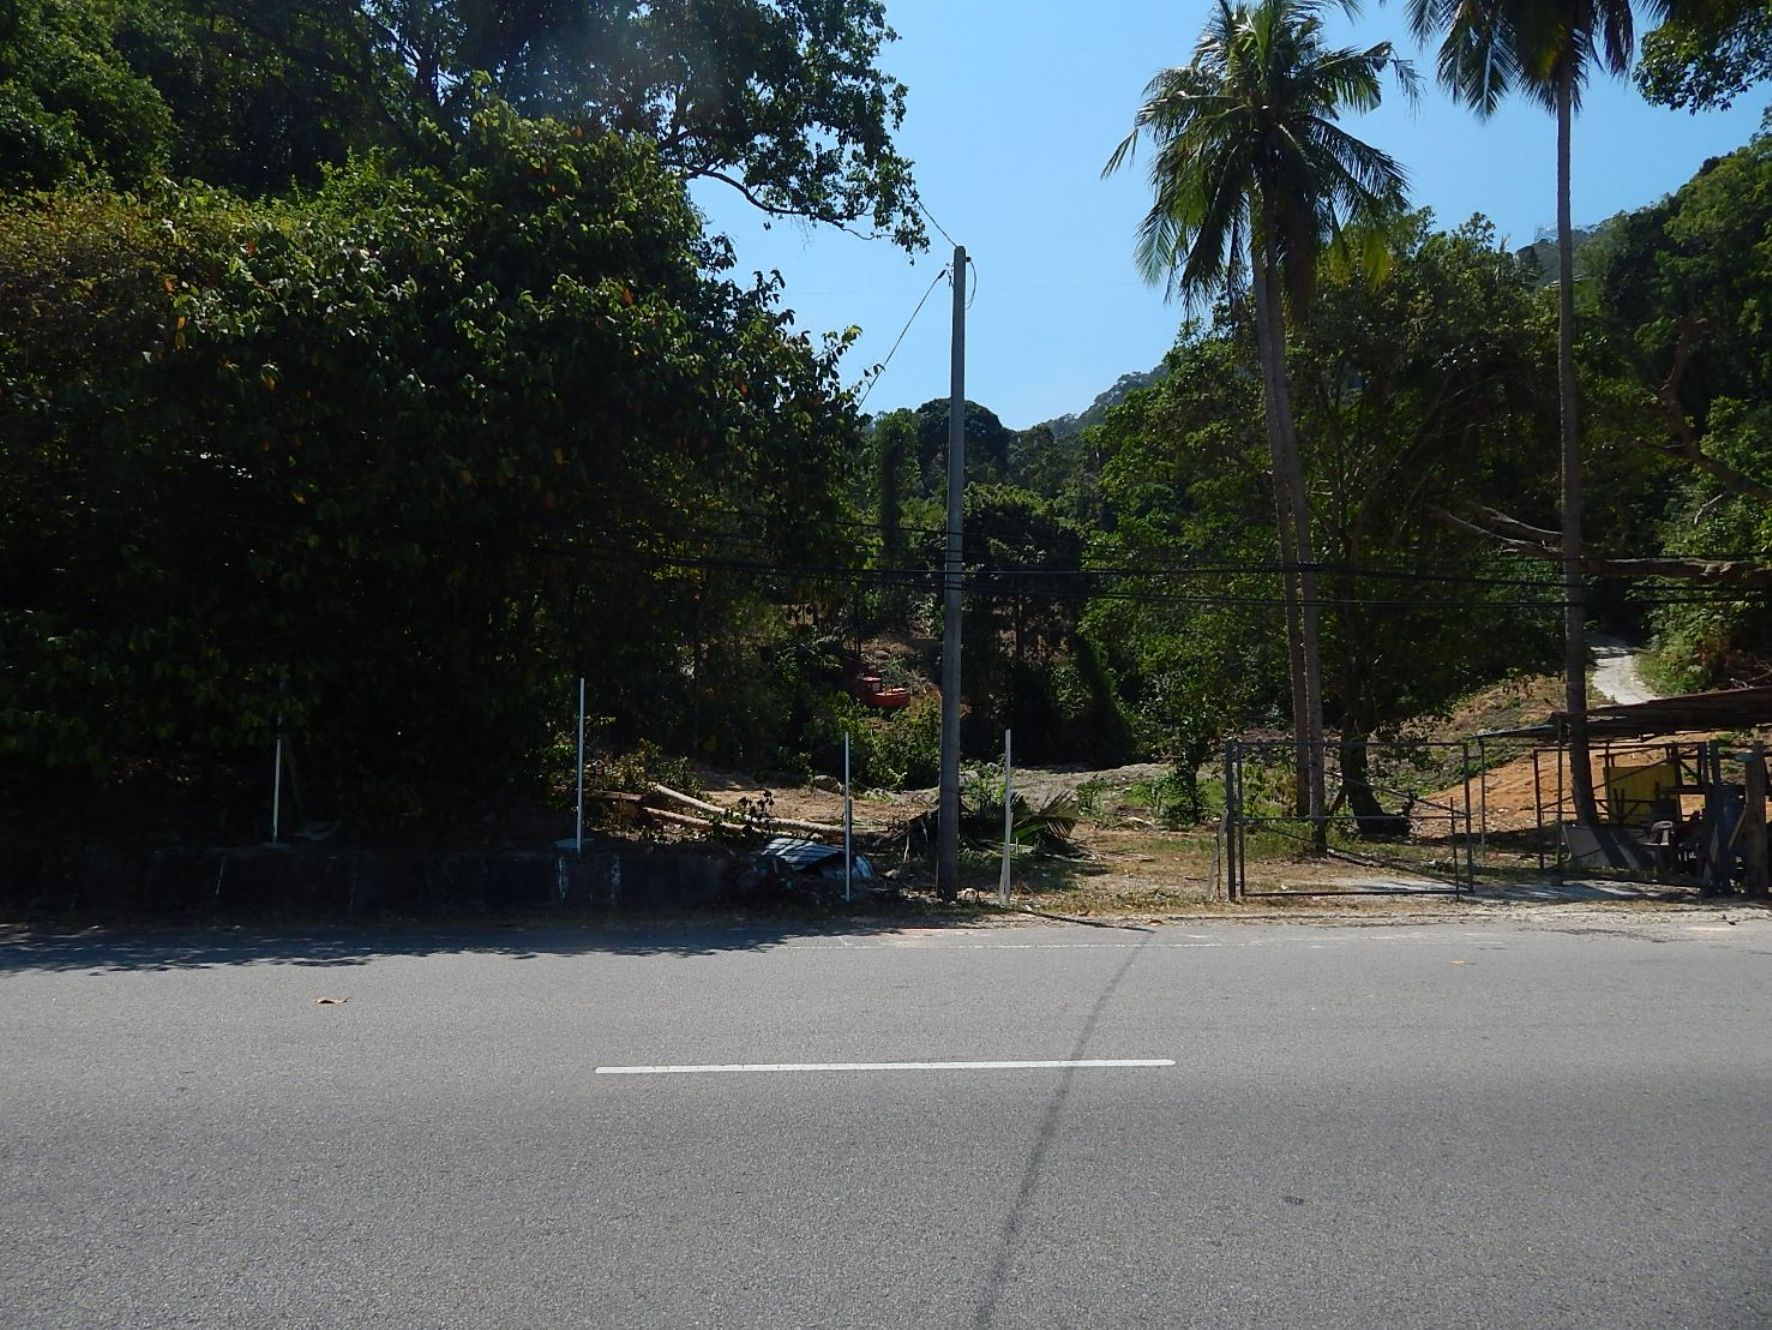 Development taking place by Jalan Batu Ferringhi. No signboard is visible | SAM